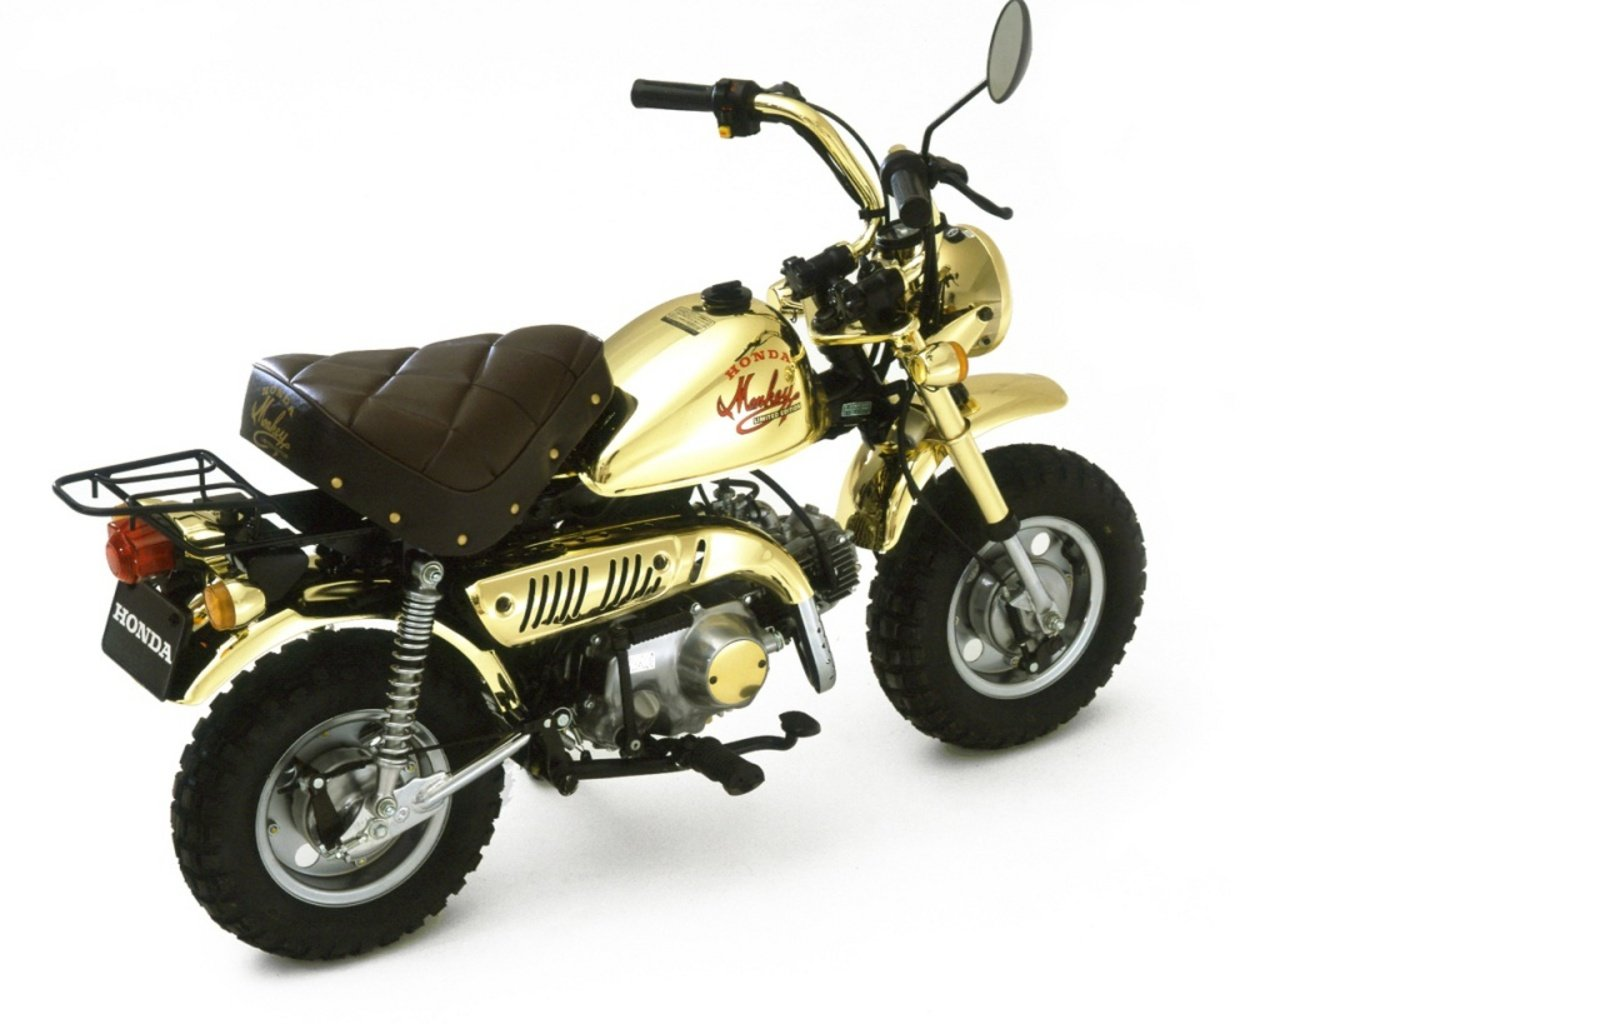 Pocket Bike Reviews Specs Prices Photos And Videos Top Speed 50cc Honda Monkey 100mph To Become Worlds Fastest